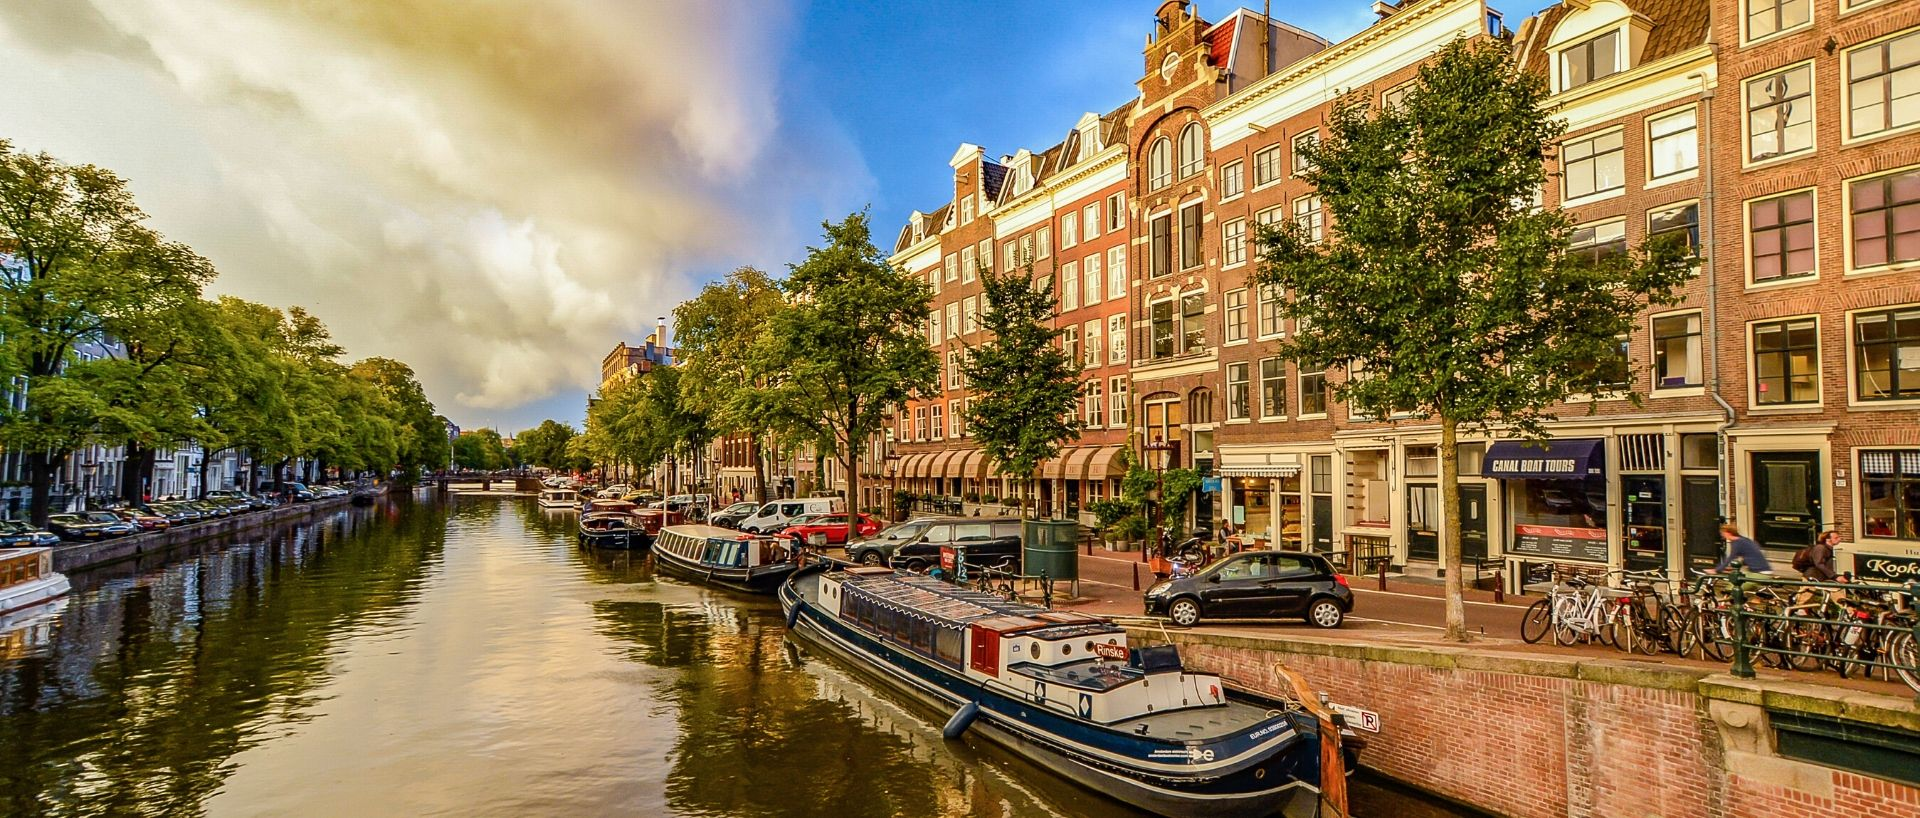 City of Amsterdam View